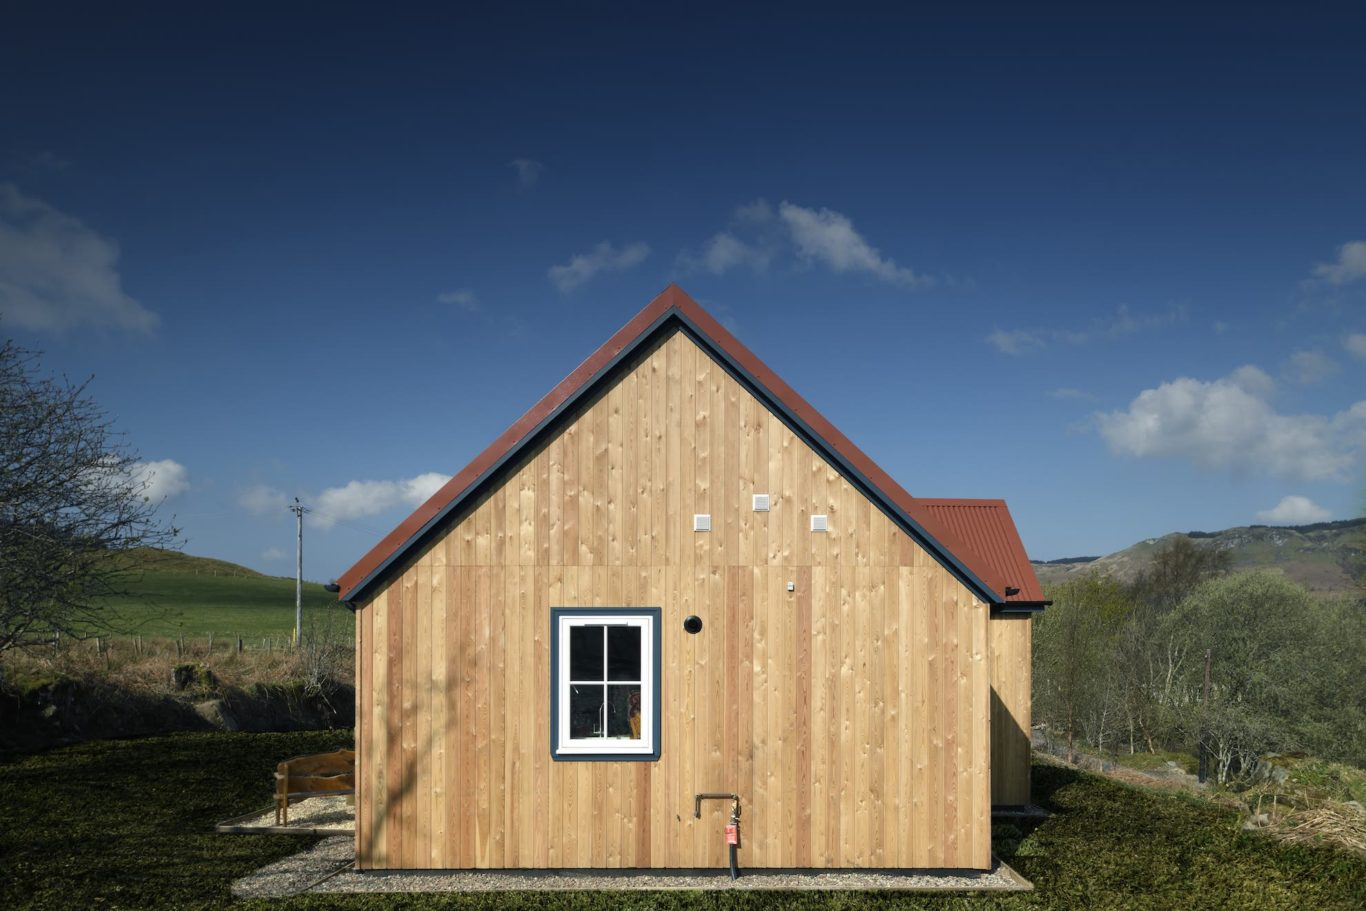 Three Bedroom Modular Home & Kit House Builders UK The Wee House Company